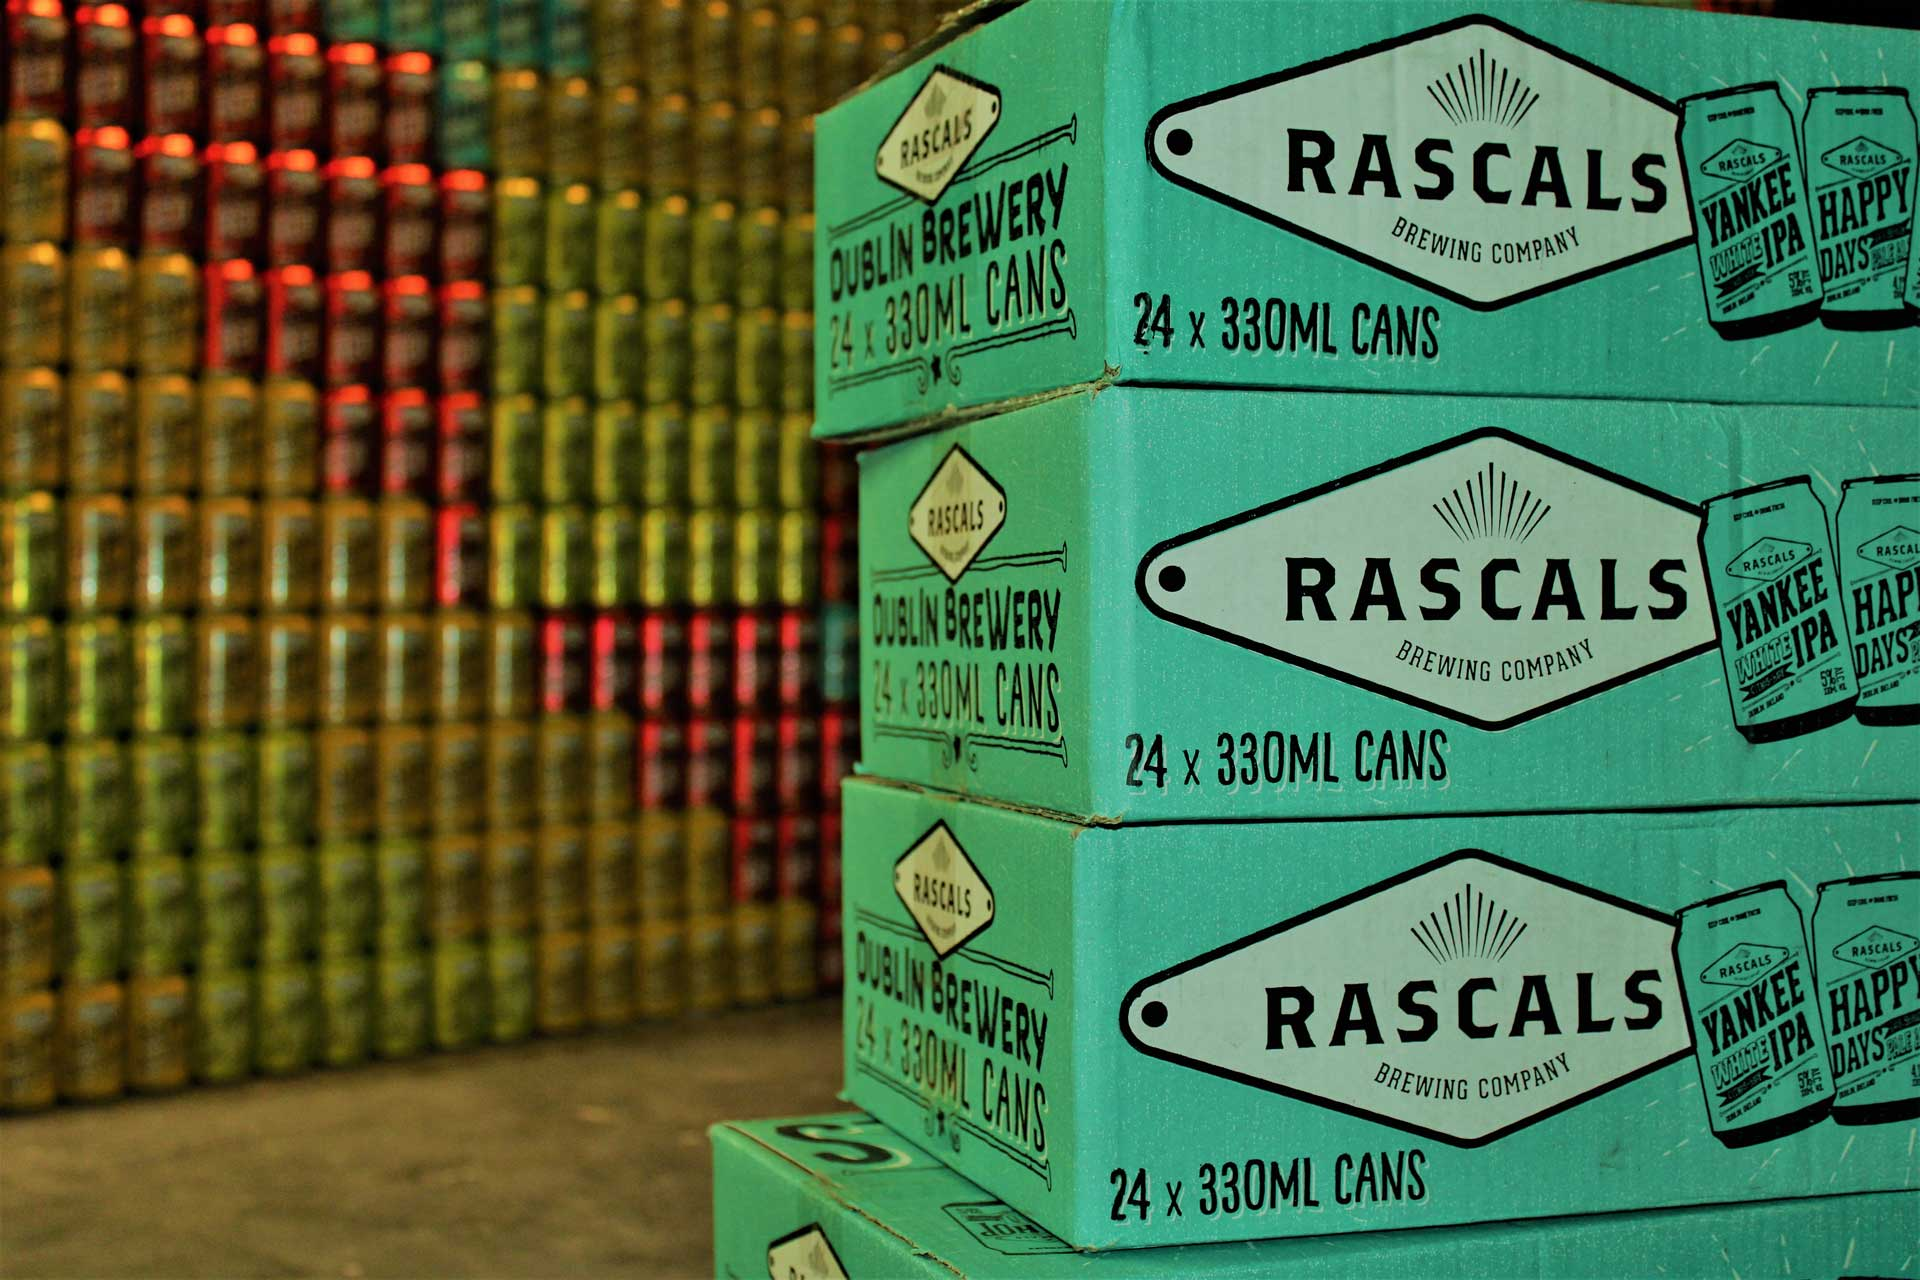 Rascals-Brewing-The-Brewery.jpg